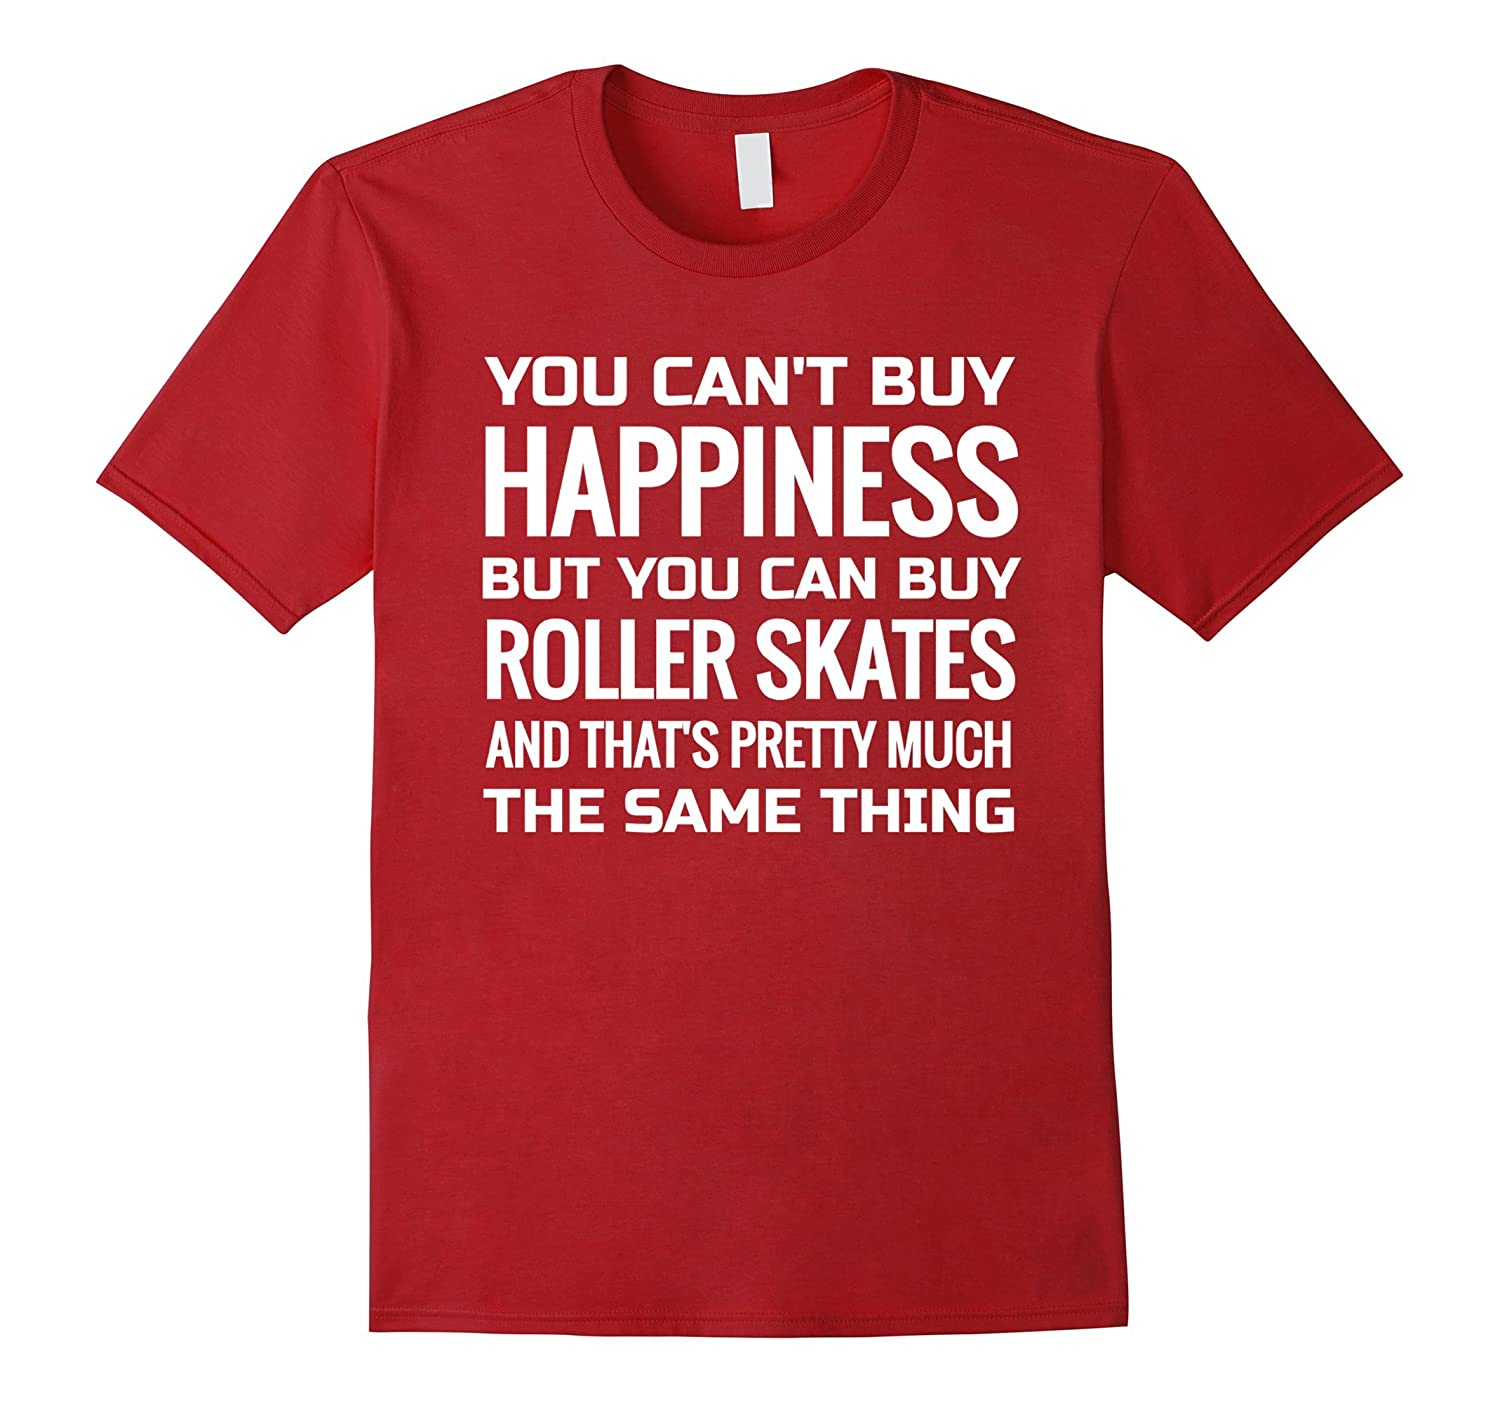 Roller skate t shirts you can t buy happiness cl for Where can i buy shirts